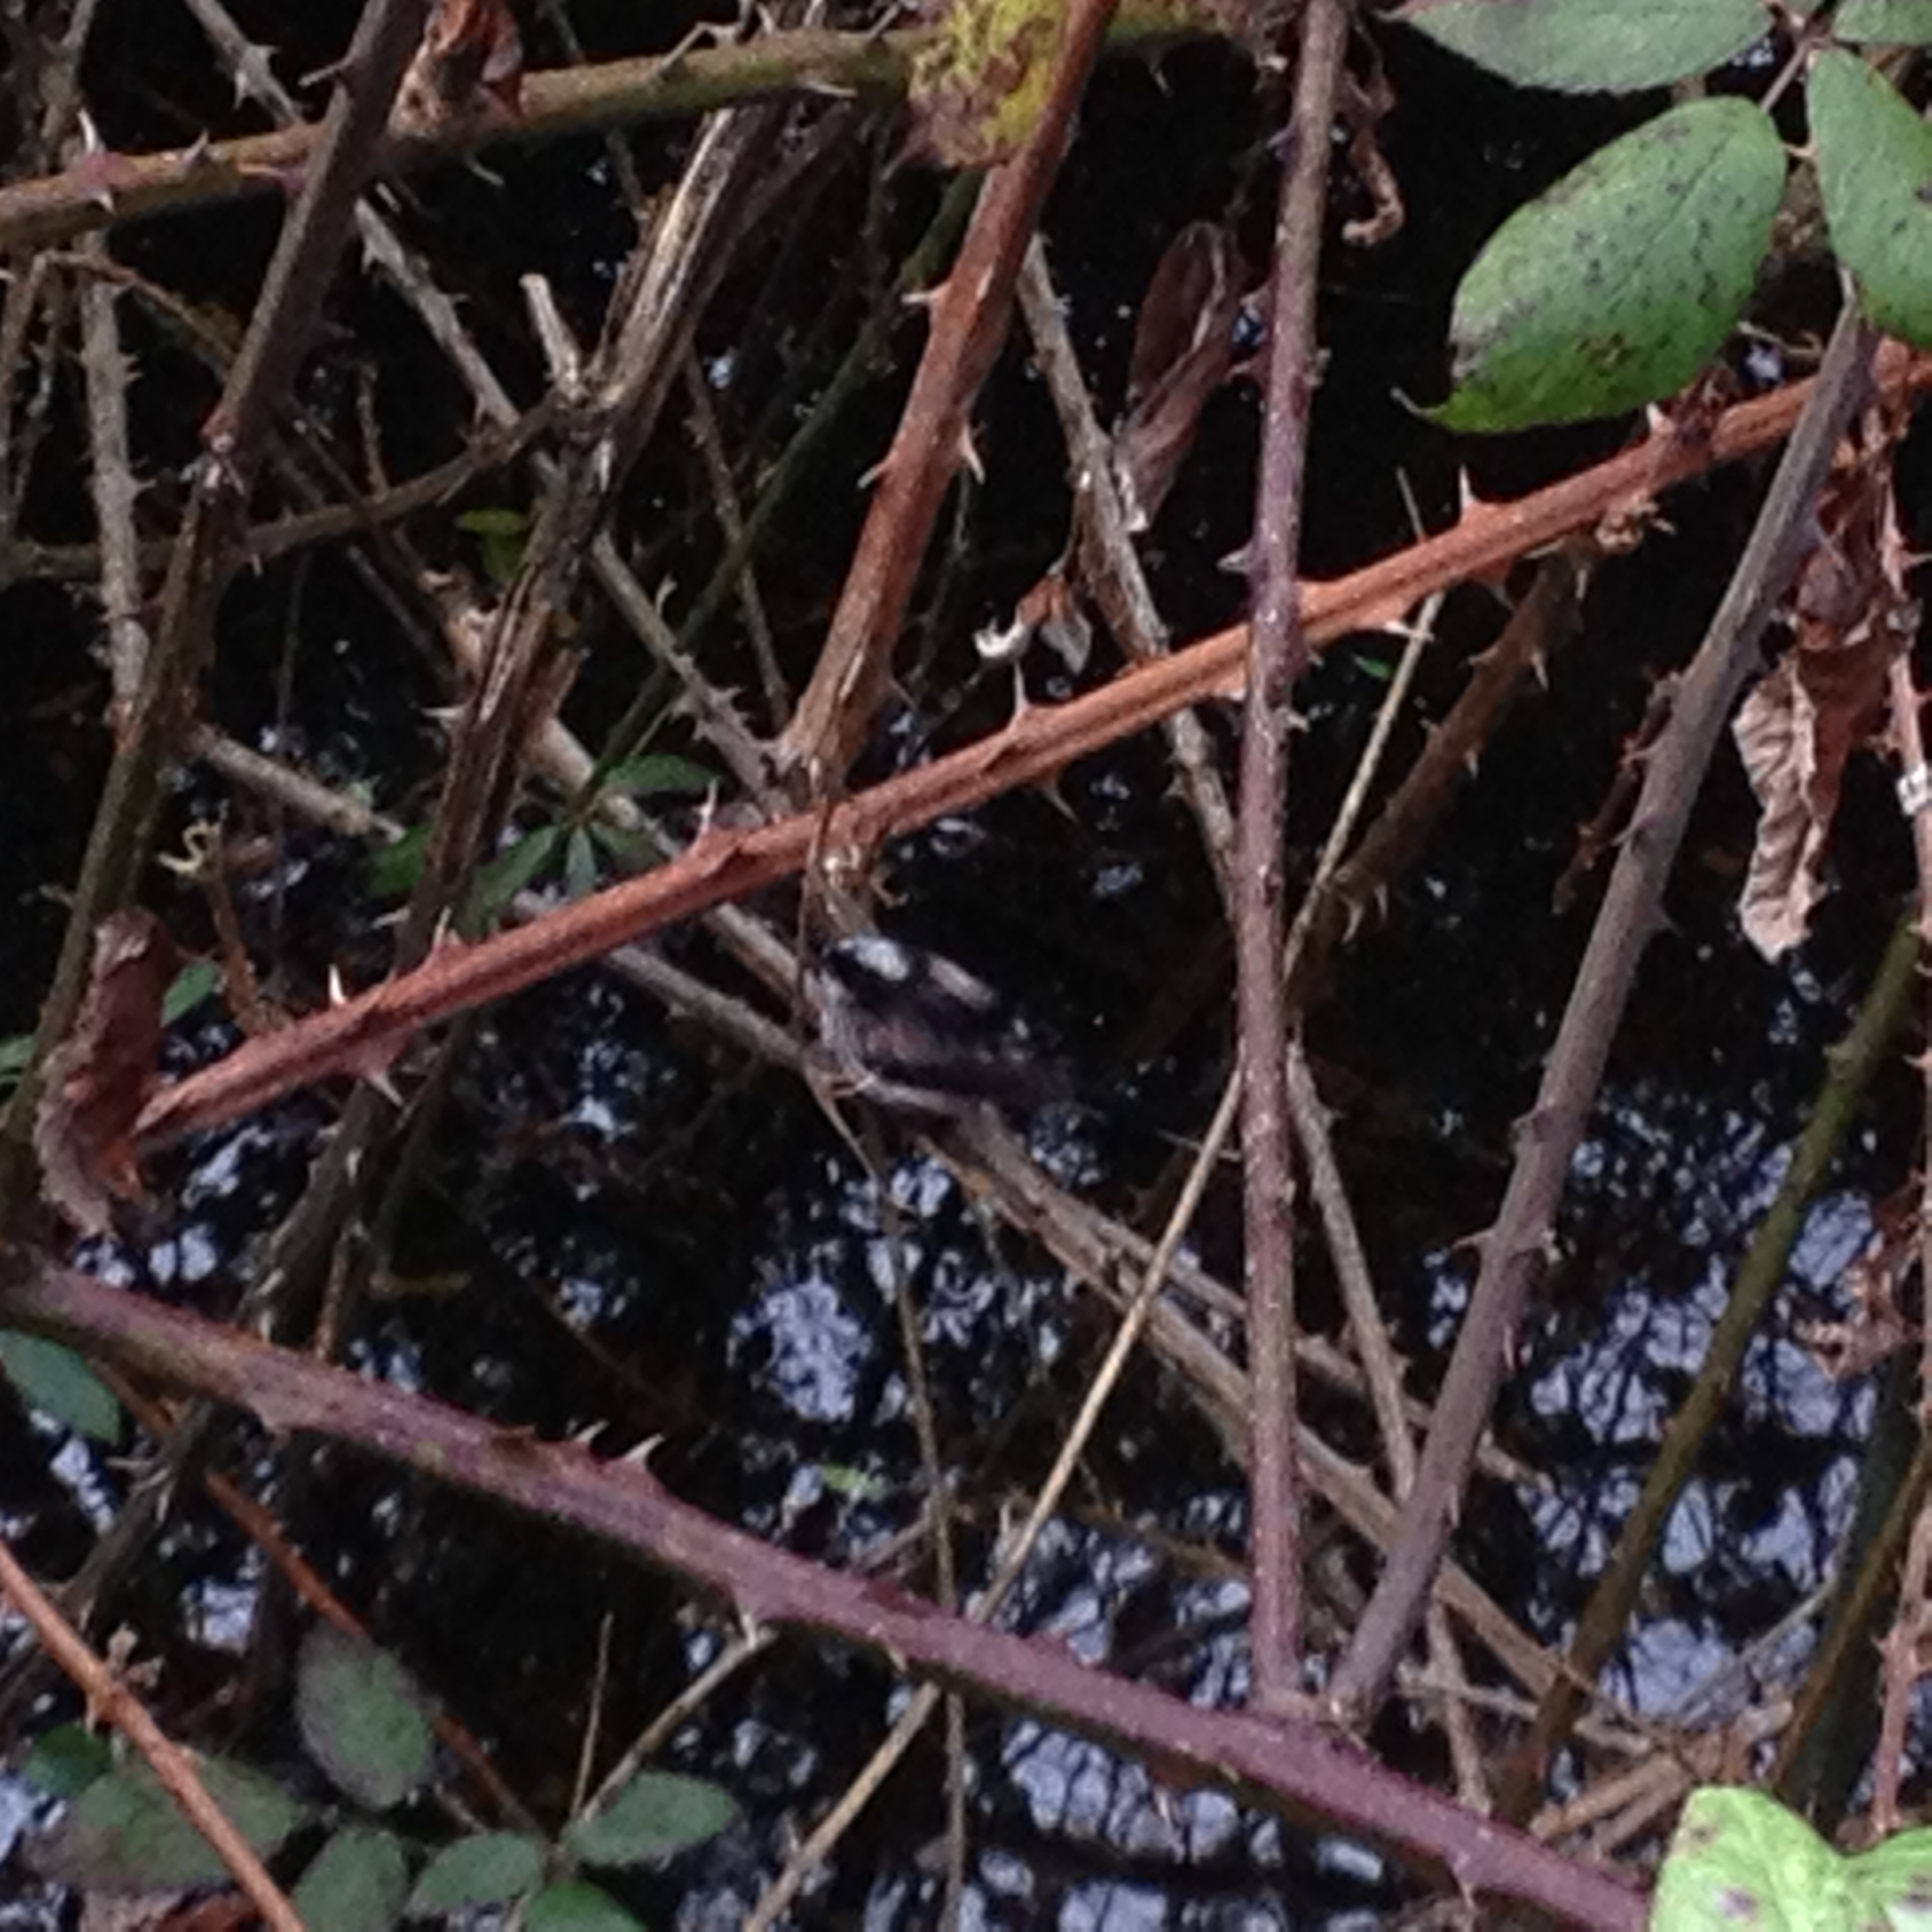 I hope you can see the bird in the centre of the picture, I wonder what it is? The same bird is bathing in the water in the picture below. February 2016.